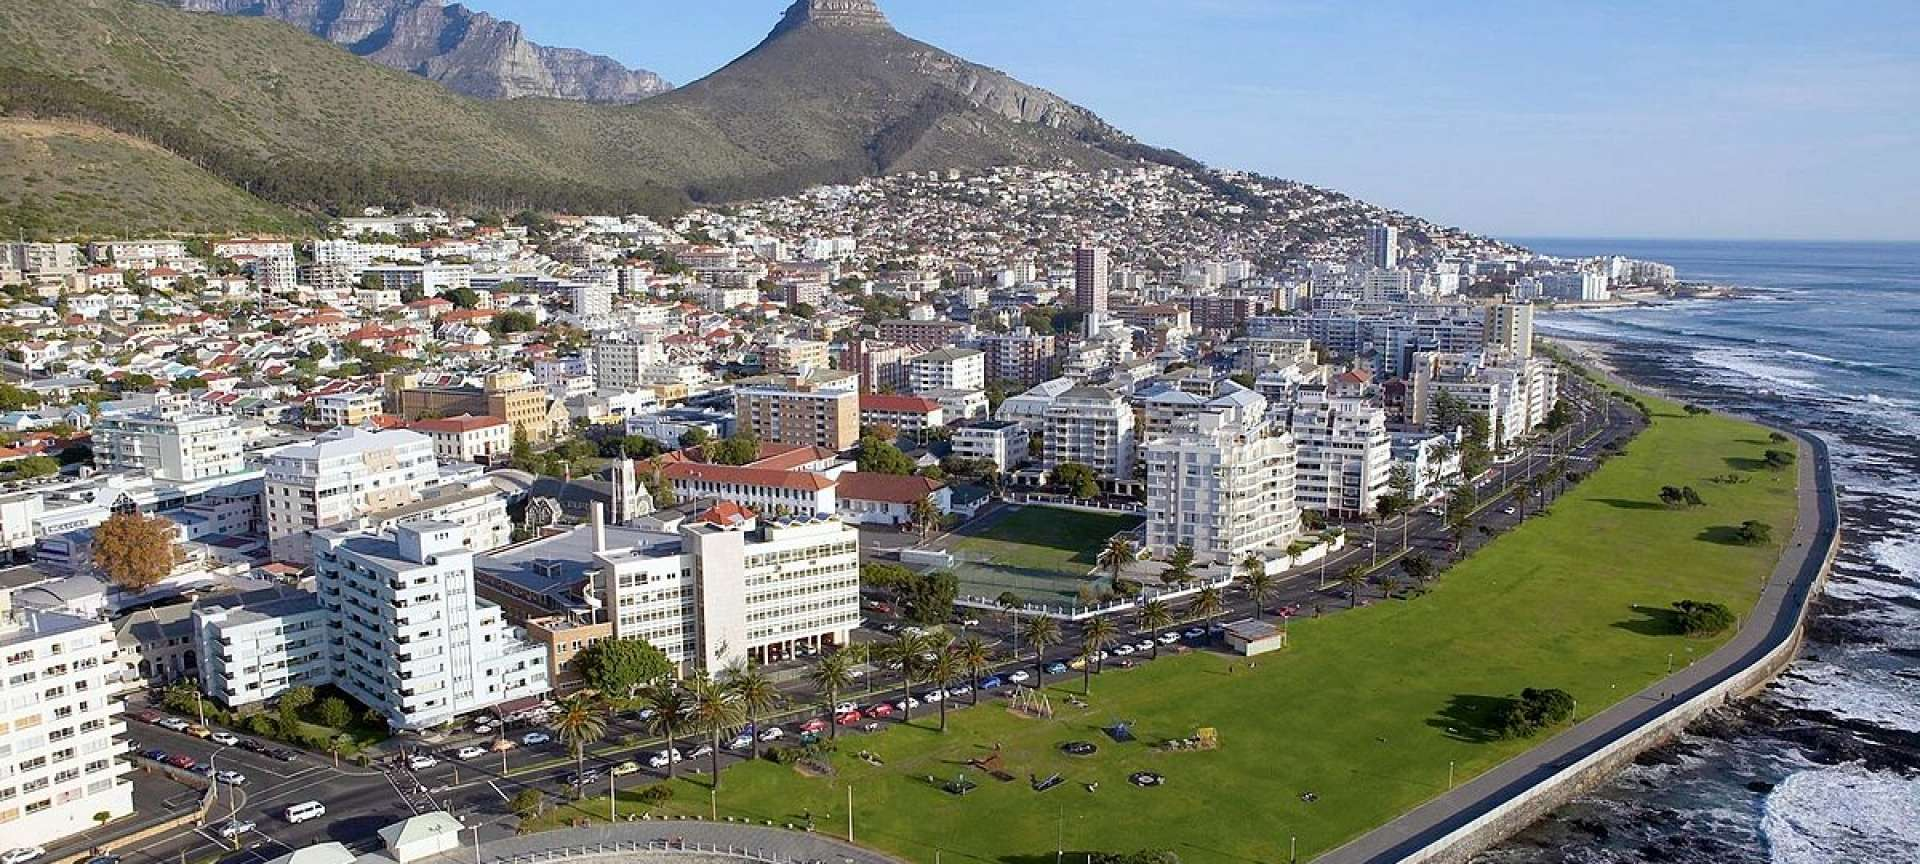 The Sea Point Promenade is somewhat of an institution for Capetonians and visitors alike.